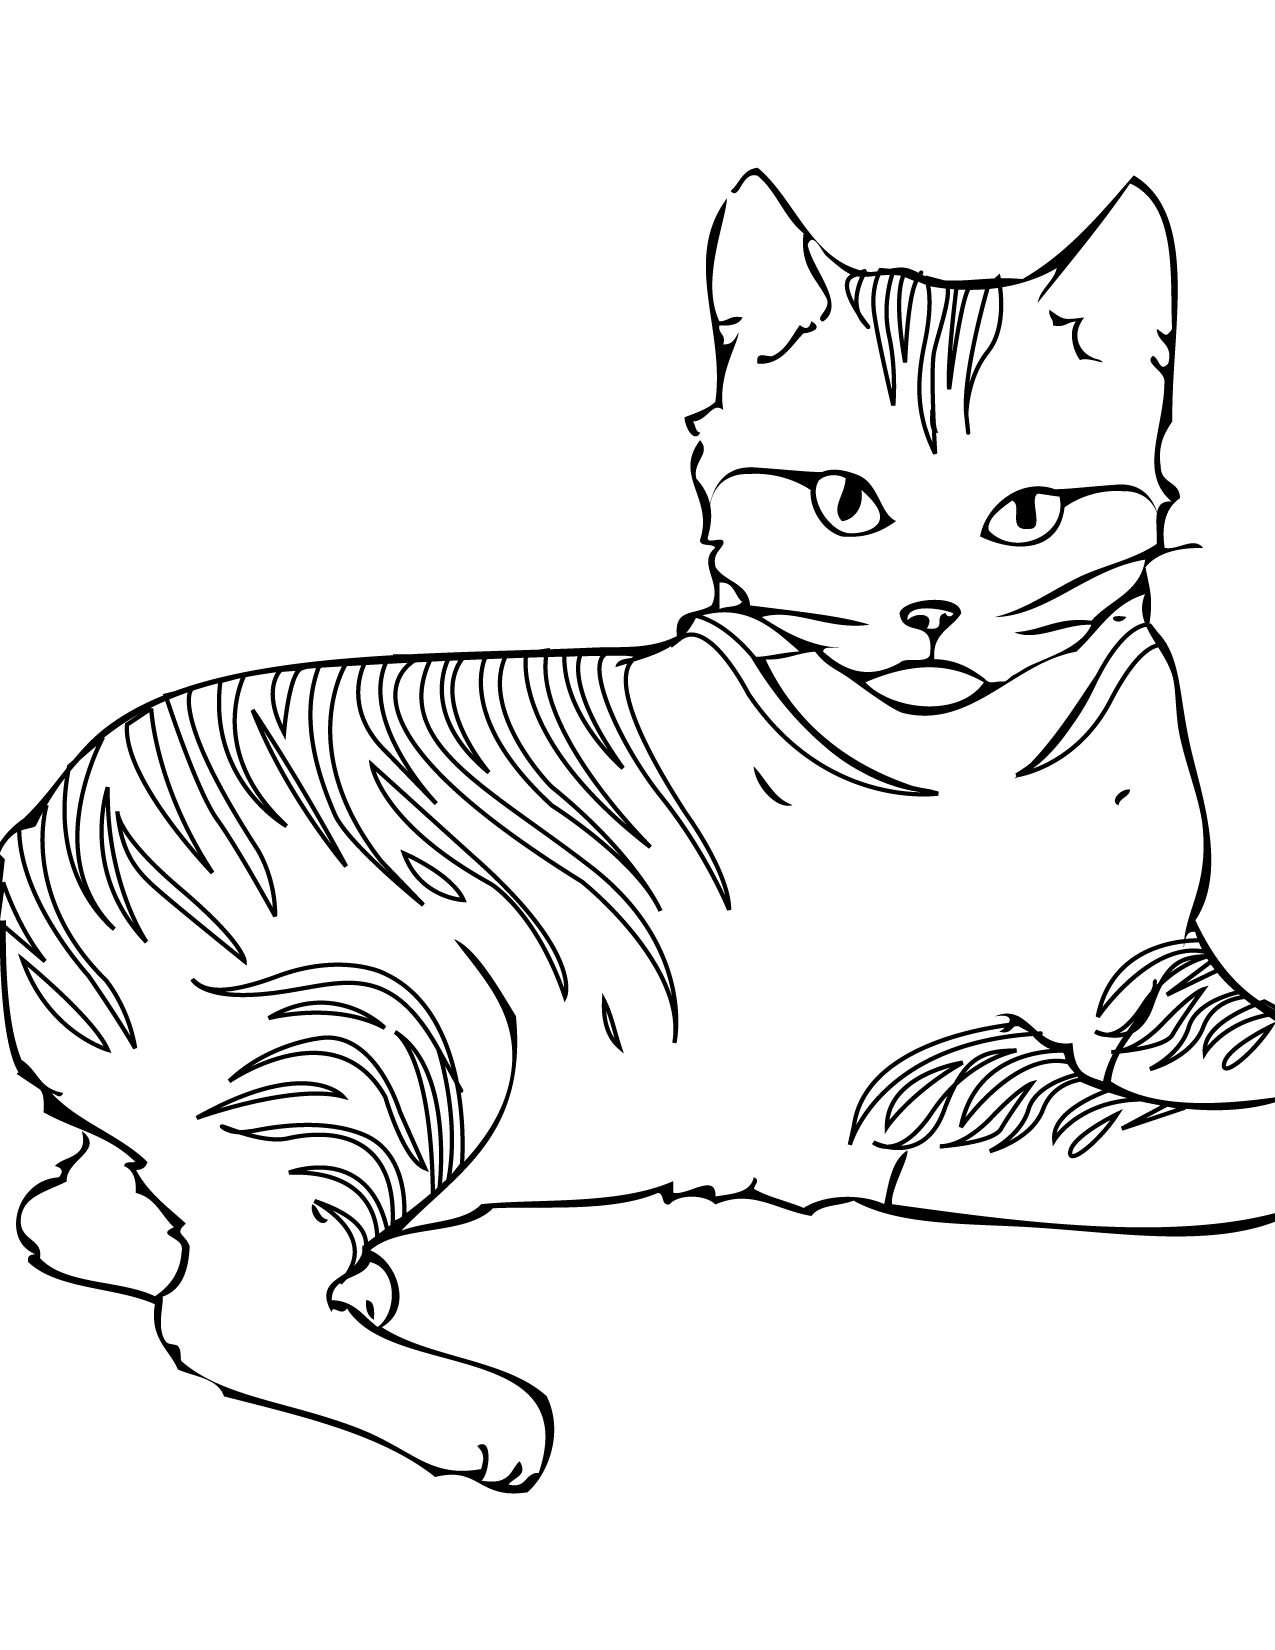 coloring sheets cats cat coloring pages for adults best coloring pages for kids sheets cats coloring